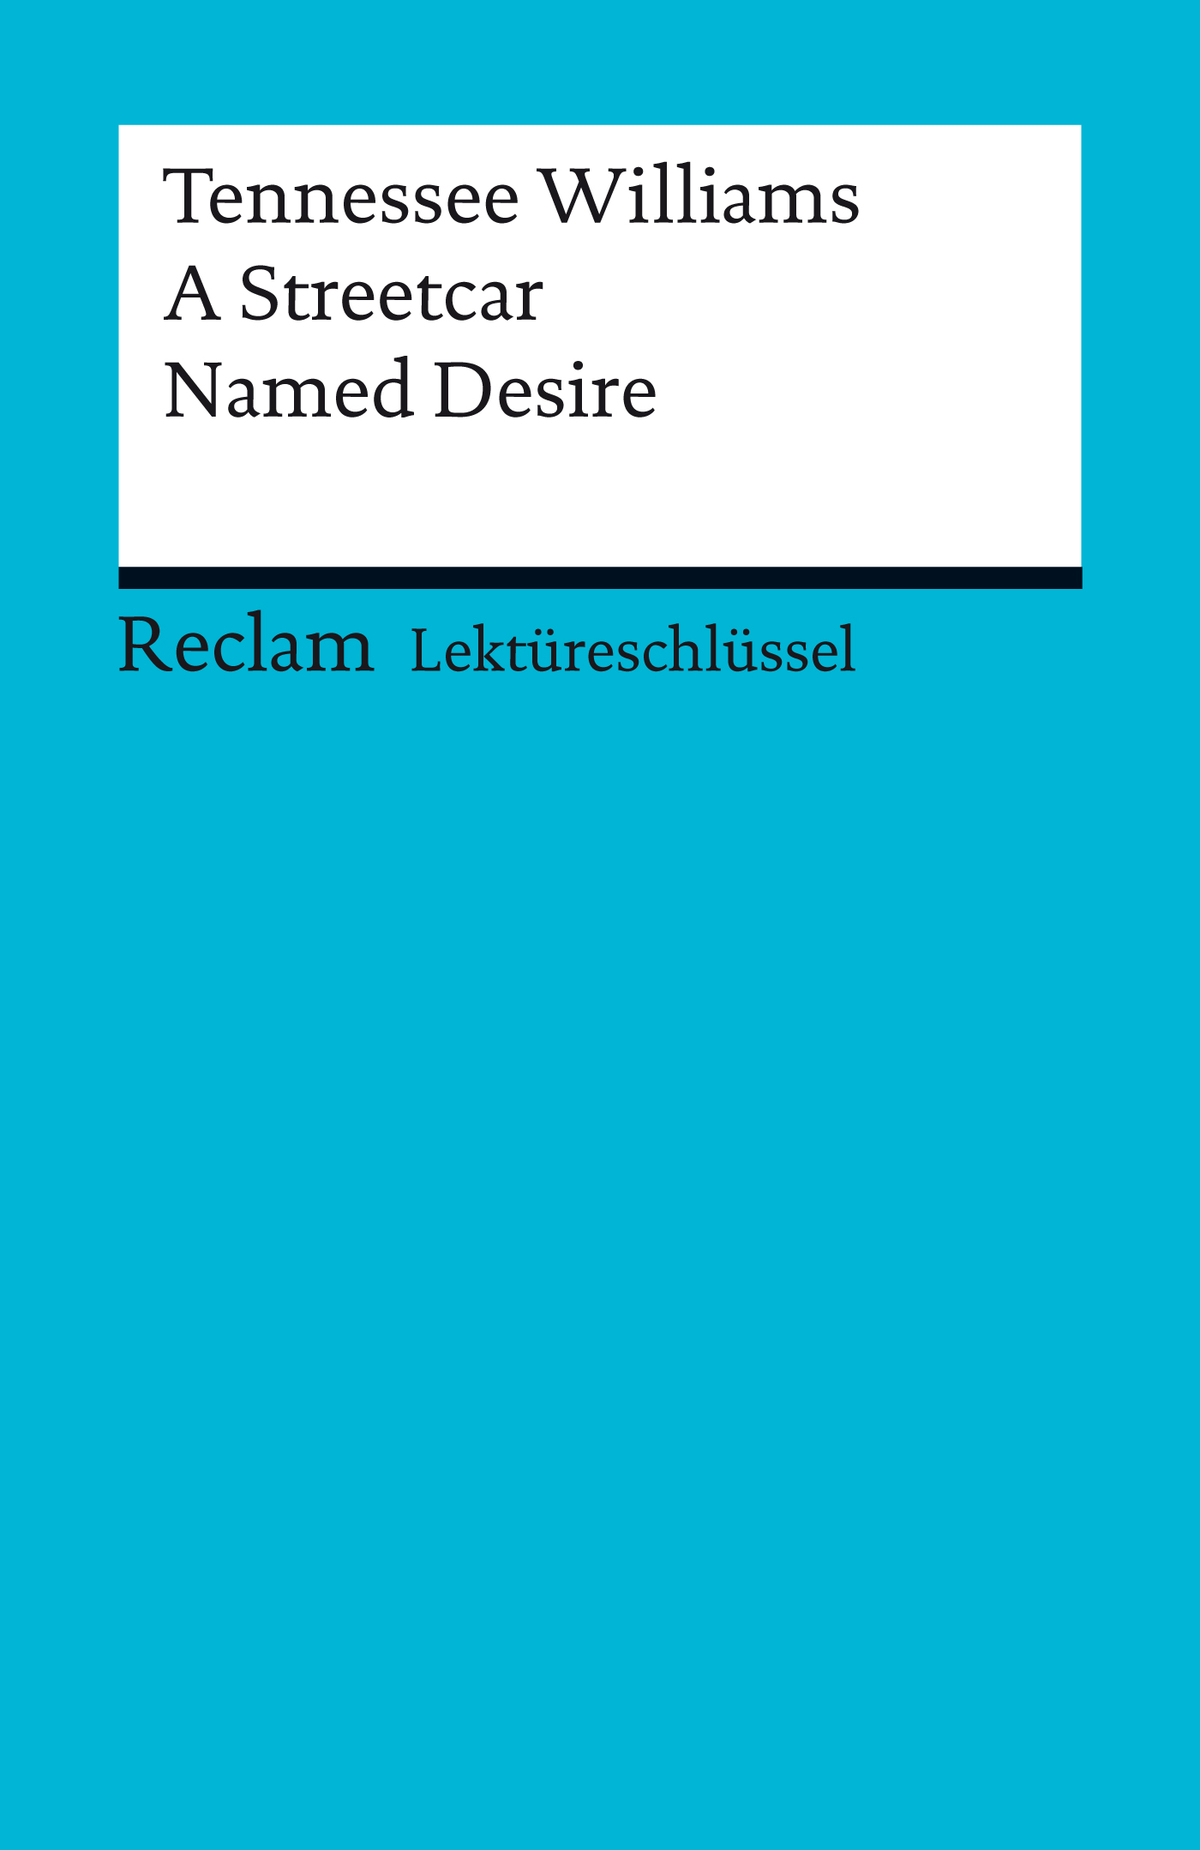 Lektüreschlüssel. Tennessee Williams: A Streetcar Named Desire